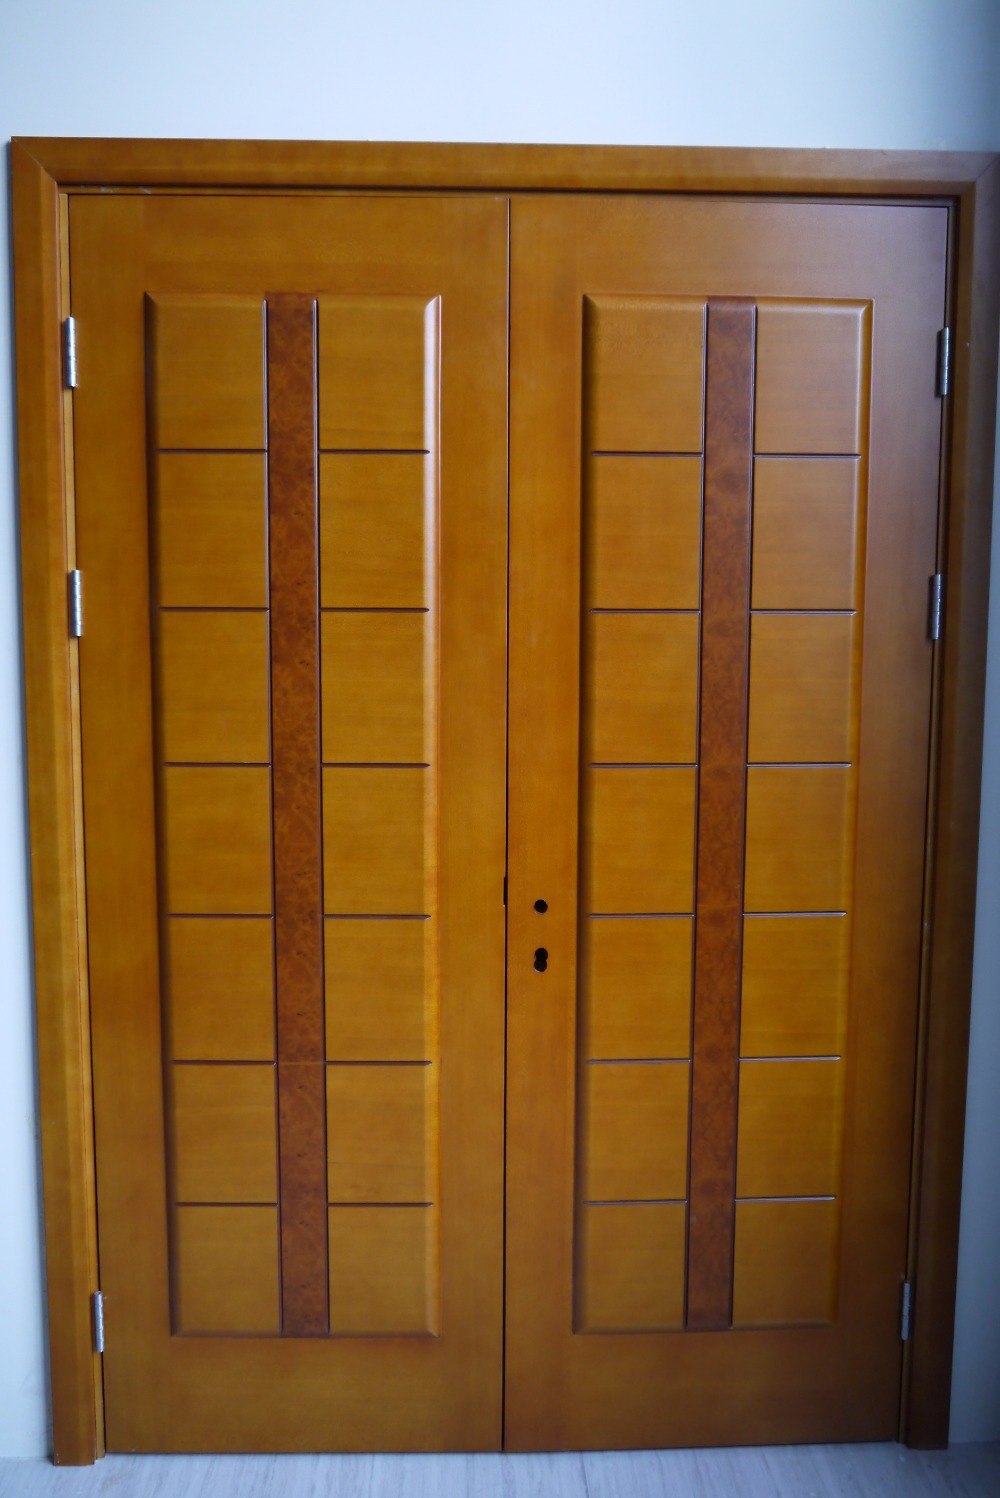 Villa main door solid wood security villa double leaf door design - Prehung Exterior Double Door 96 Wood Mahogany 2 Panel Round Top Solid Rustic Front Doors